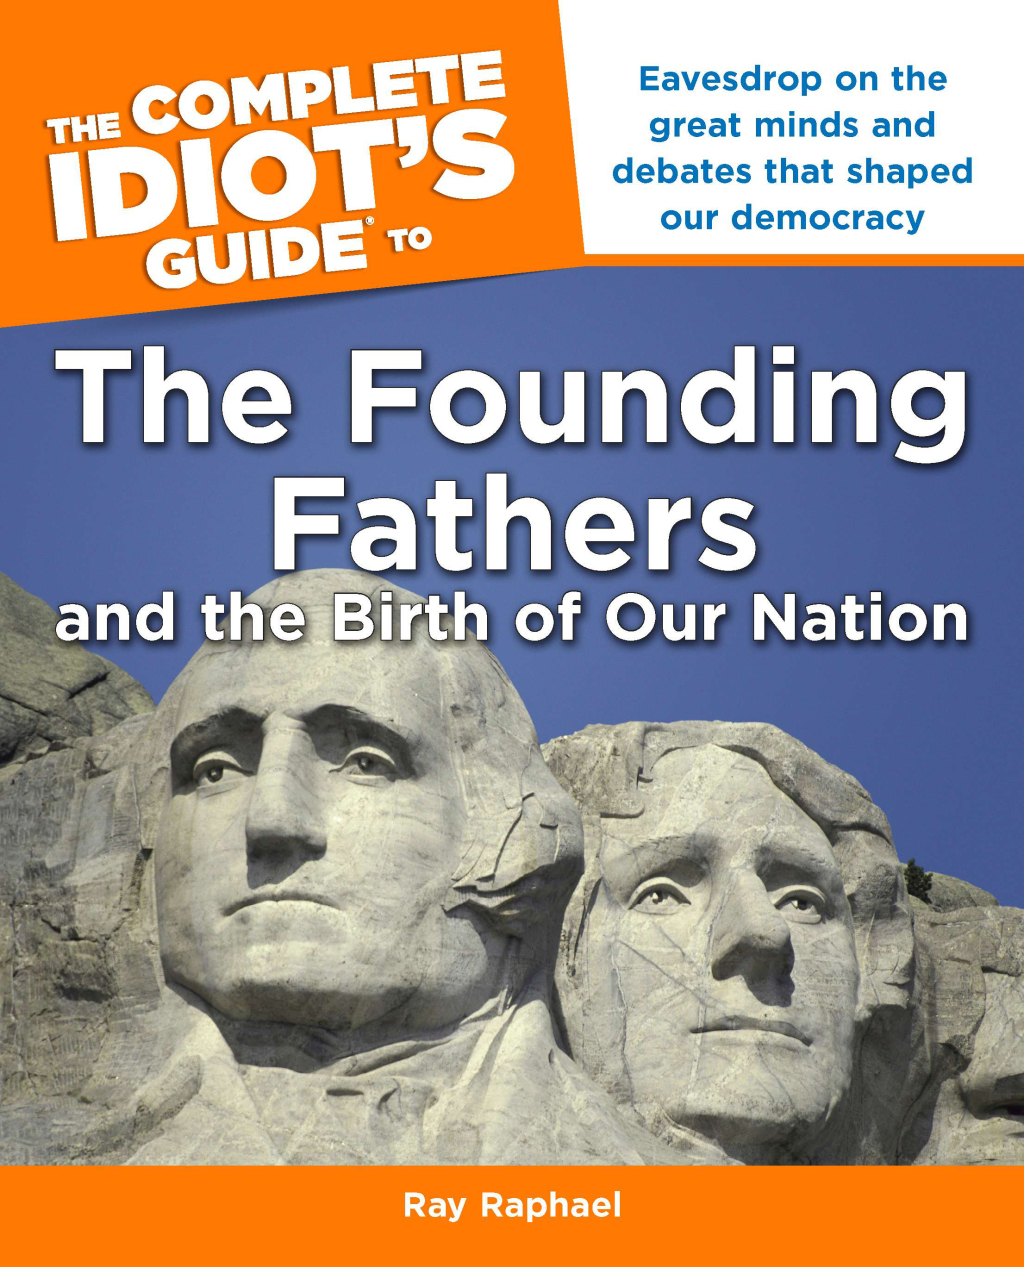 The Complete Idiot's Guide to the Founding Fathers (ebook) eBooks